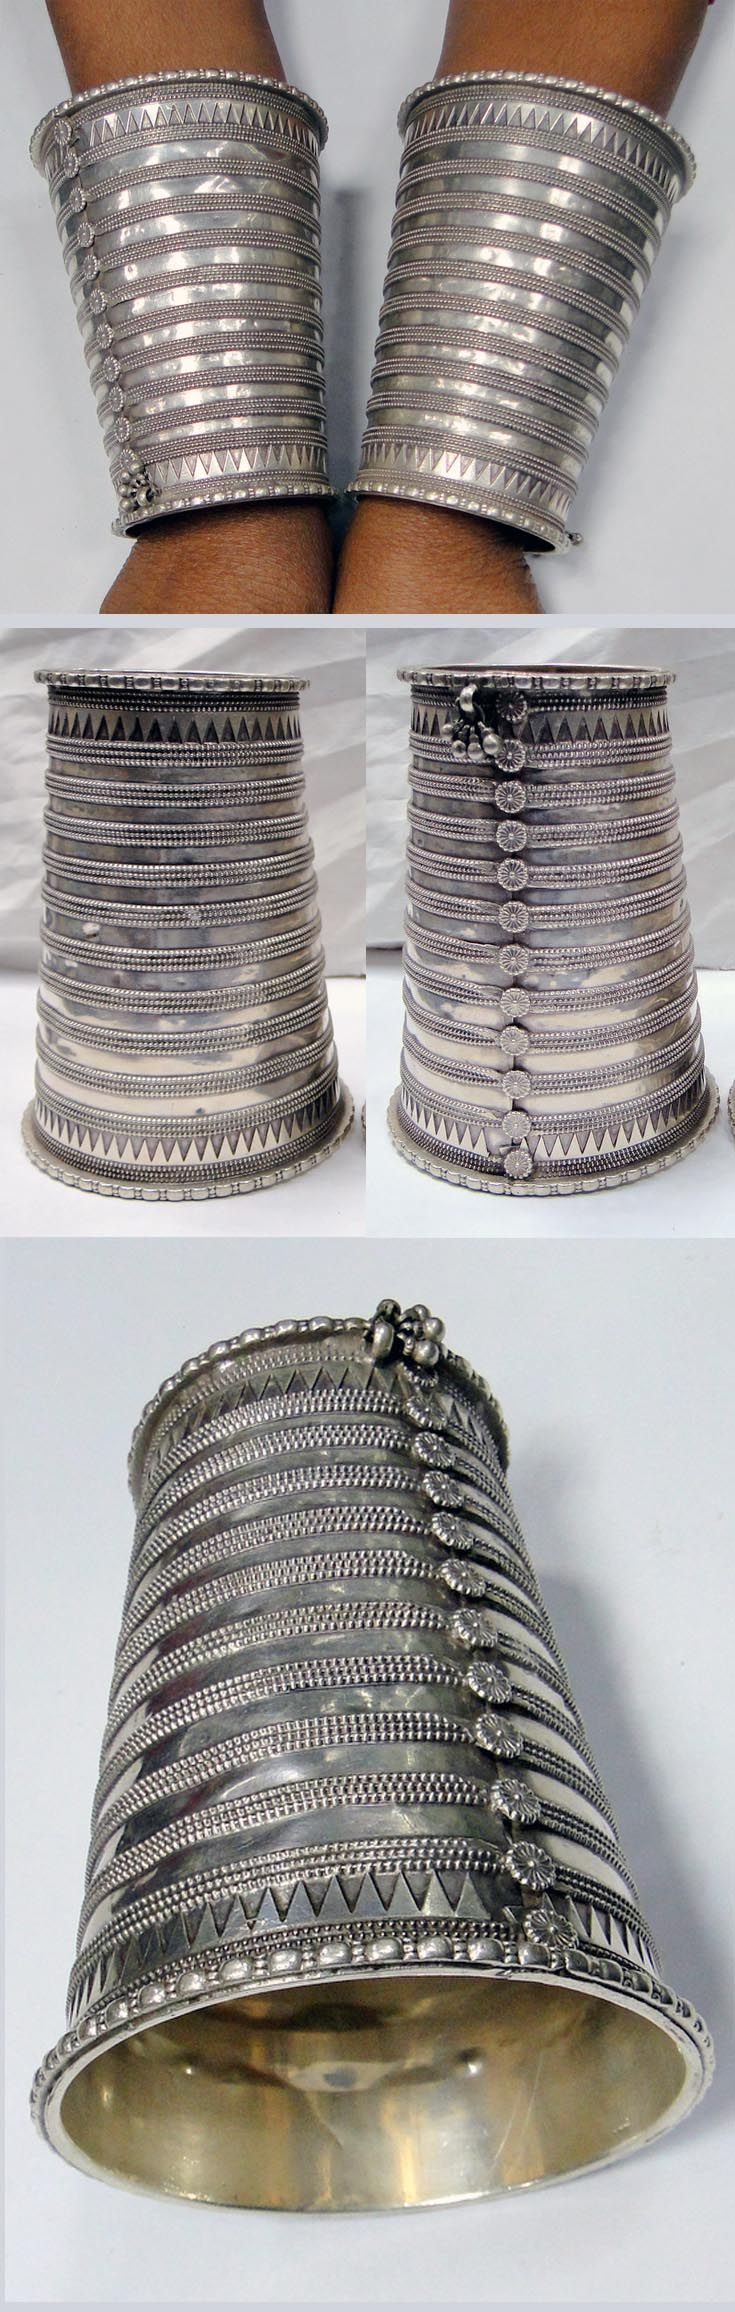 India ~ Rajasthan   Pair of solid silver pair of bracelets (upper arm)   ca. early to mid 20th century   1'999$ for the pair